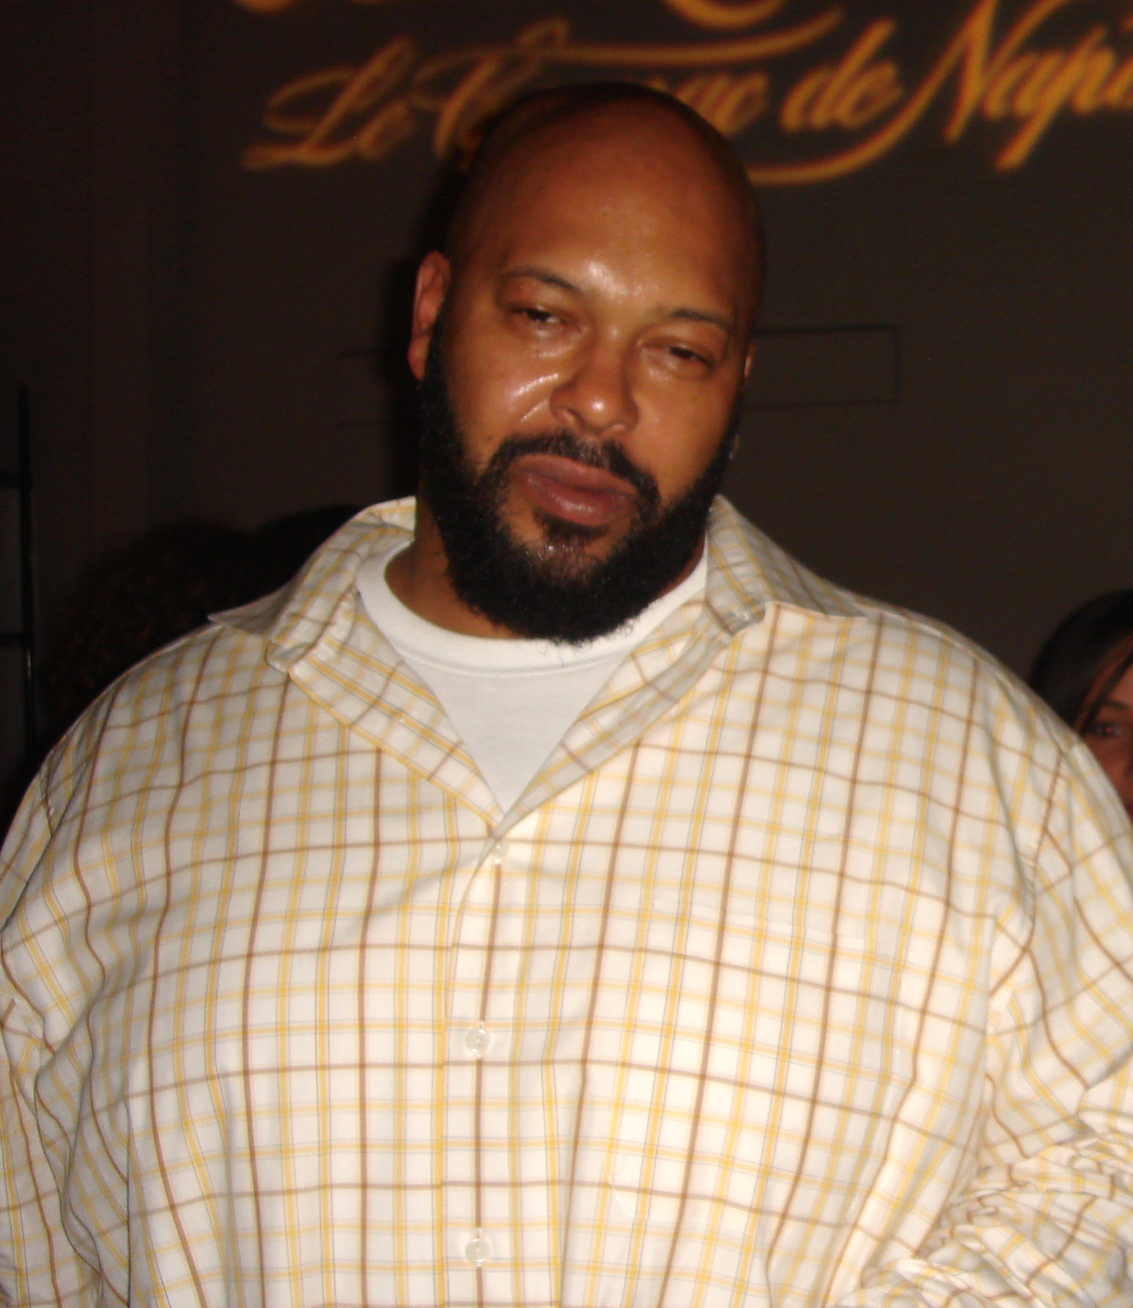 Suge Knight sentenced to 28 years for 2015 hit-and-run death